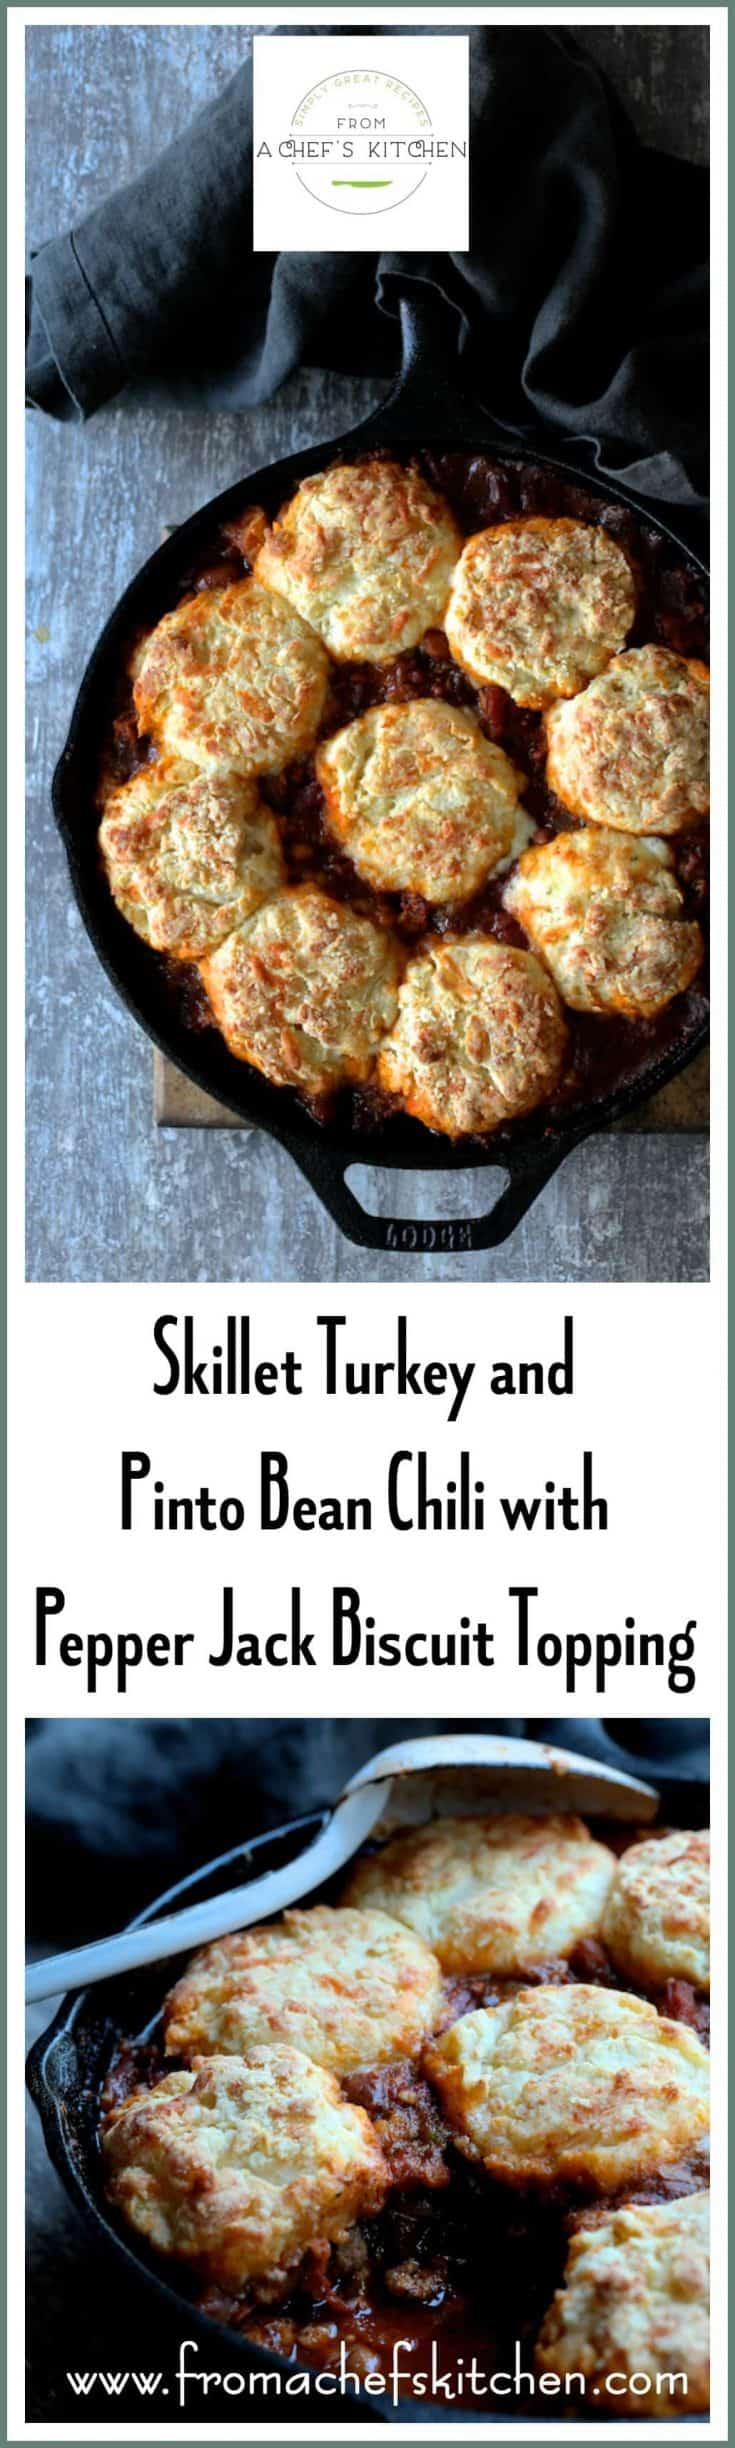 Skillet Turkey Pinto Bean Chili with Pepper Jack Biscuit Topping is a one-dish meal your family will be excited to dig into!  #skillet #turkey #turkeychili #pintobean #bean #pepperjack #cheese #biscuit #poultry